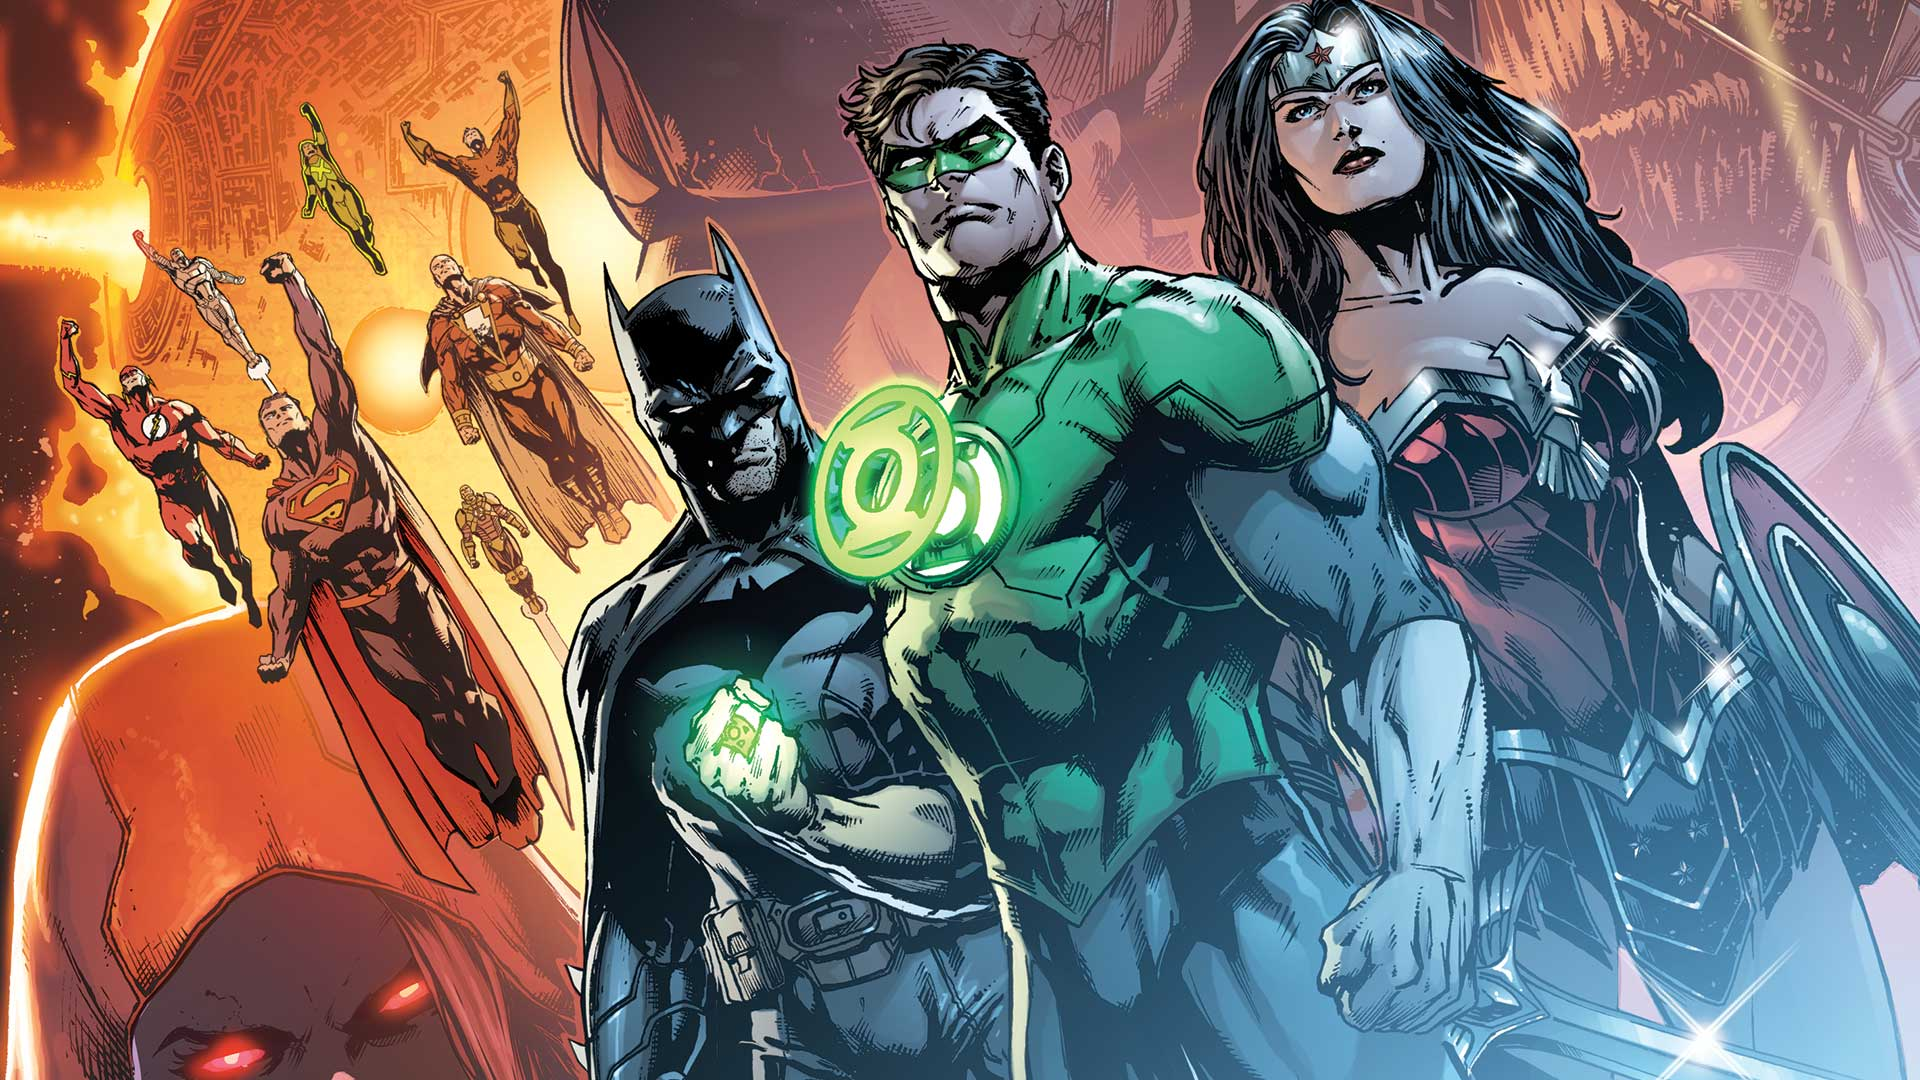 Comics - Justice League Green Lantern Flash Superman Batman Wonder Woman  Aquaman Shazam (DC Comics